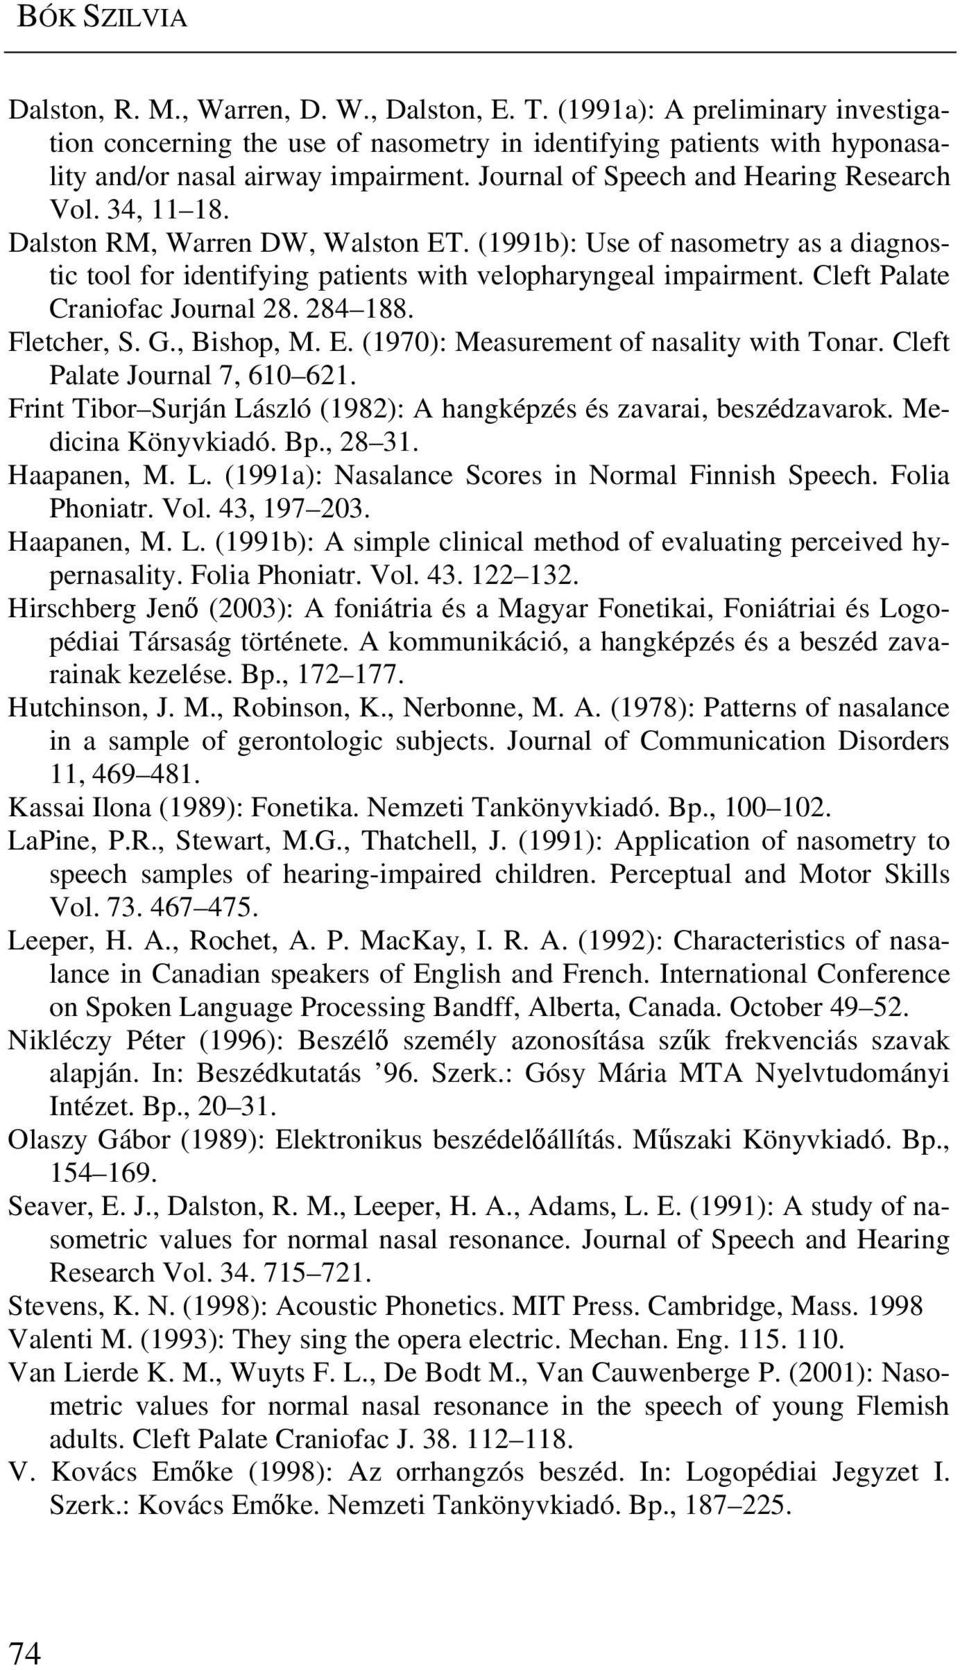 Cleft Palate Craniofac Journal 28. 284 188. Fletcher, S. G., Bishop, M. E. (1970): Measurement of nasality with Tonar. Cleft Palate Journal 7, 610 621.